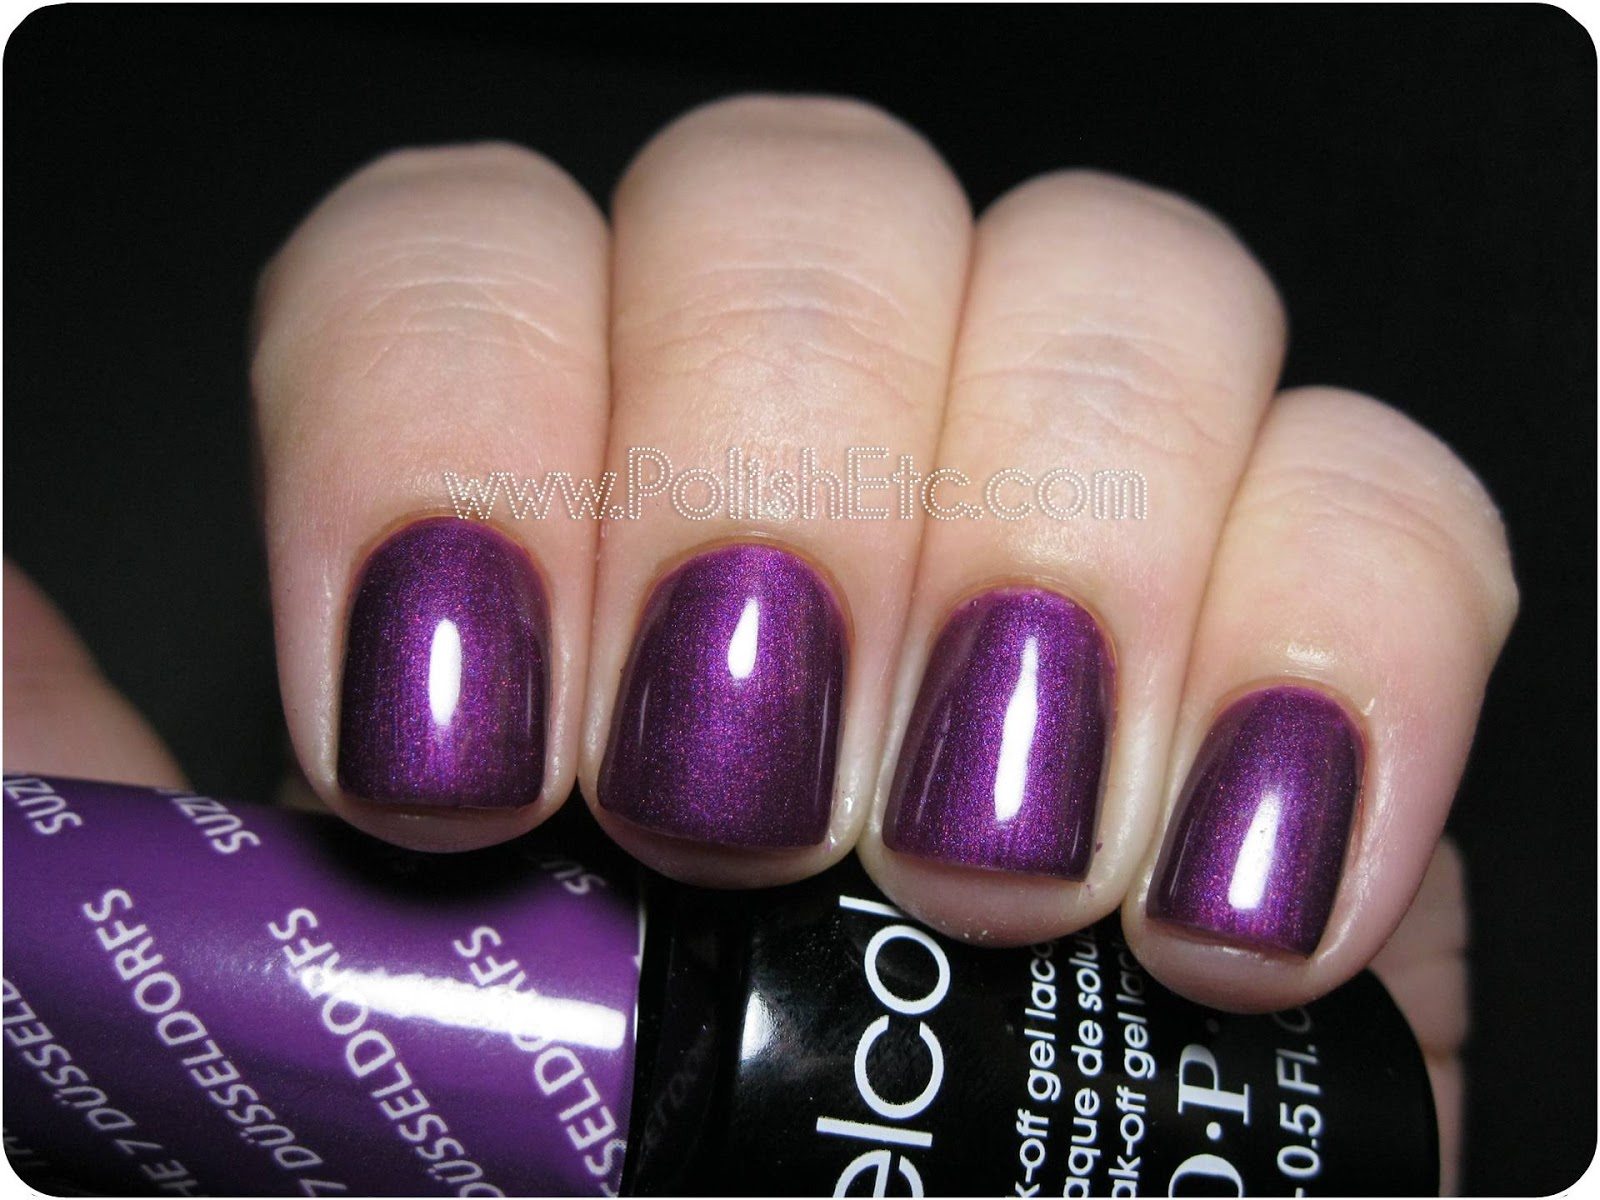 Opi Suzi And The 7 Dusseldorfs Swatch And Gelcolor Comparison